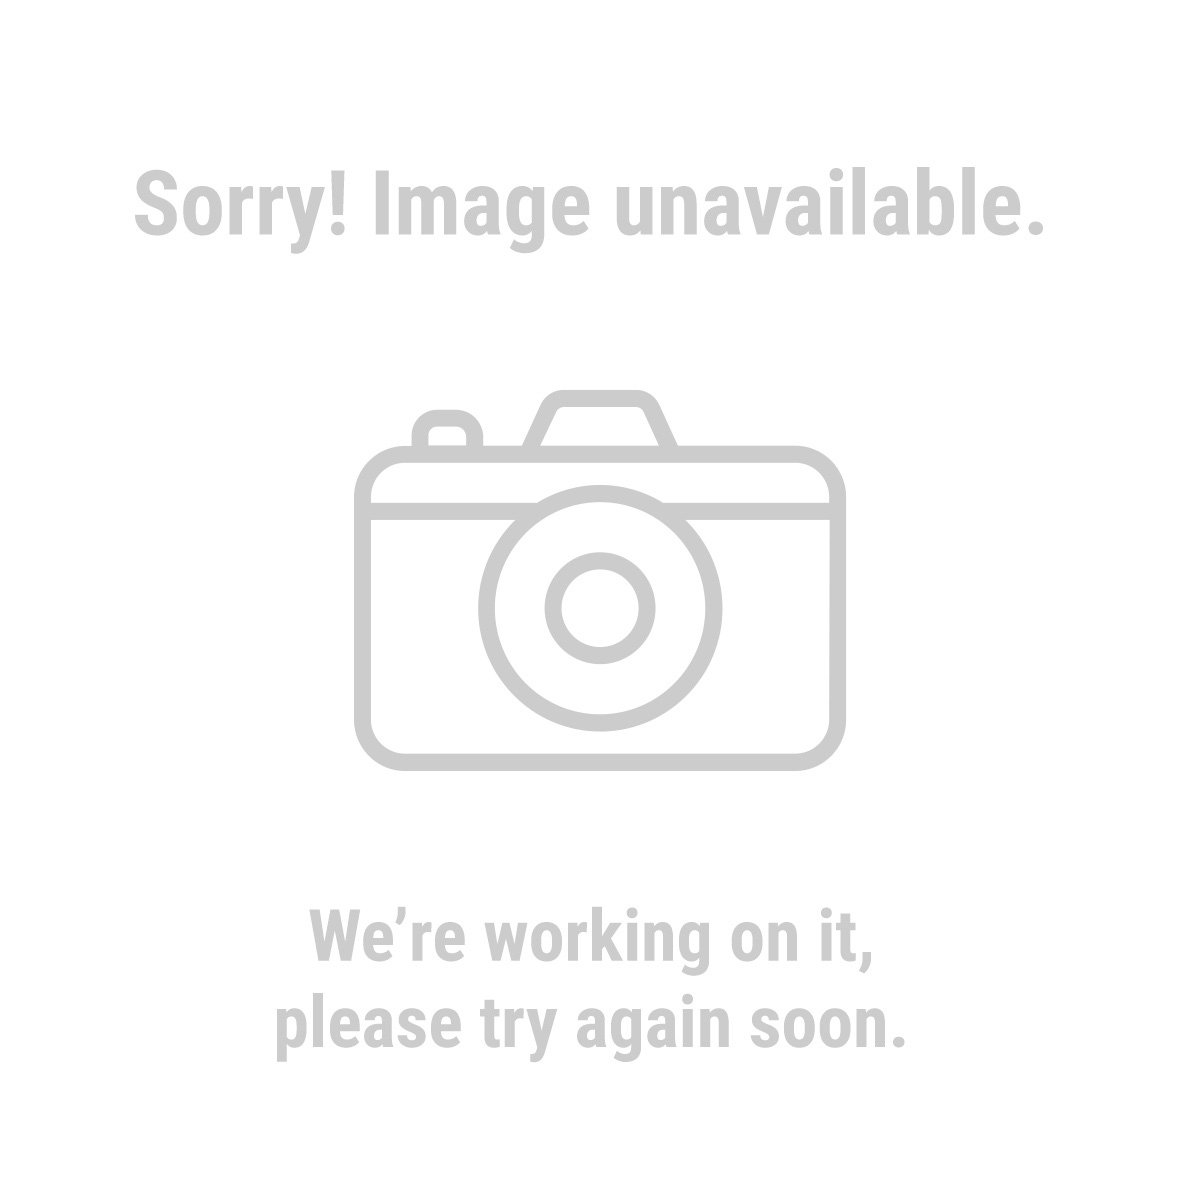 best remote helicopter for kids with Radio Control Airplane 2015 on Watch together with Showthread as well Radio Control Airplane 2015 together with Remote Control Helicopter With Camera further Helicopter Craft.